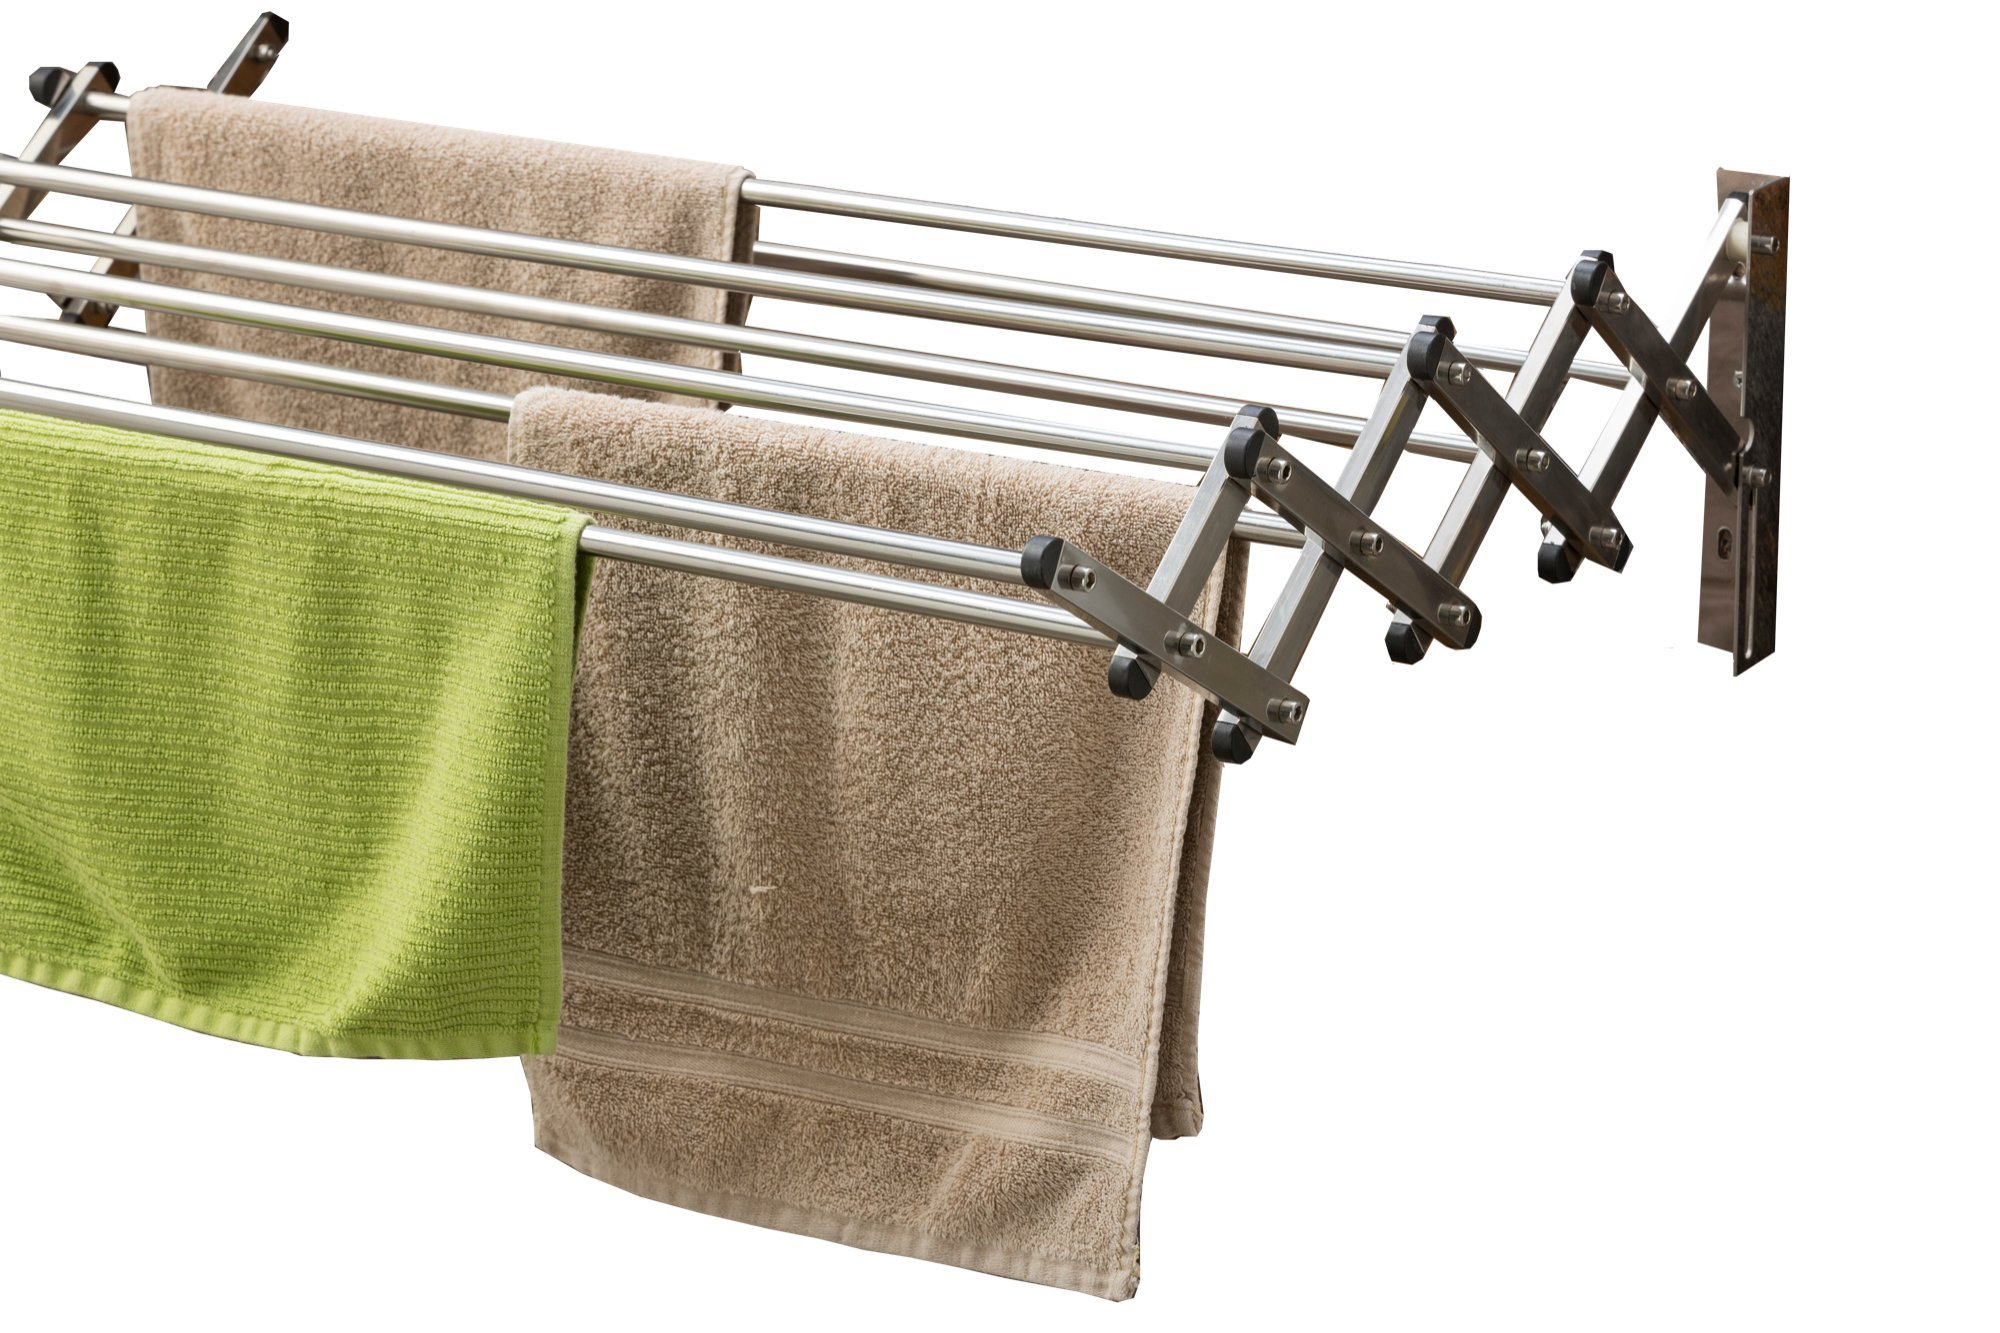 AERO W Space Saver Racks Stainless Steel Wall Mounted Collapsible Laundry Folding Clothes Drying Rack 60 Pound Capacity 22.5 Linear Ft Clothesline - Helps dry your clothes and avoid all types of wrinkles when removing your clothes from the dryer. It's equivalent to having 22 feet of linear hanging line. Lowers your energy bill by reducing your clothes dryer use. Very sturdy and durable (made of stainless steel and can hold up to 60lbs of clothes) - laundry-room, entryway-laundry-room, drying-racks - 8119IEmuQ3L -